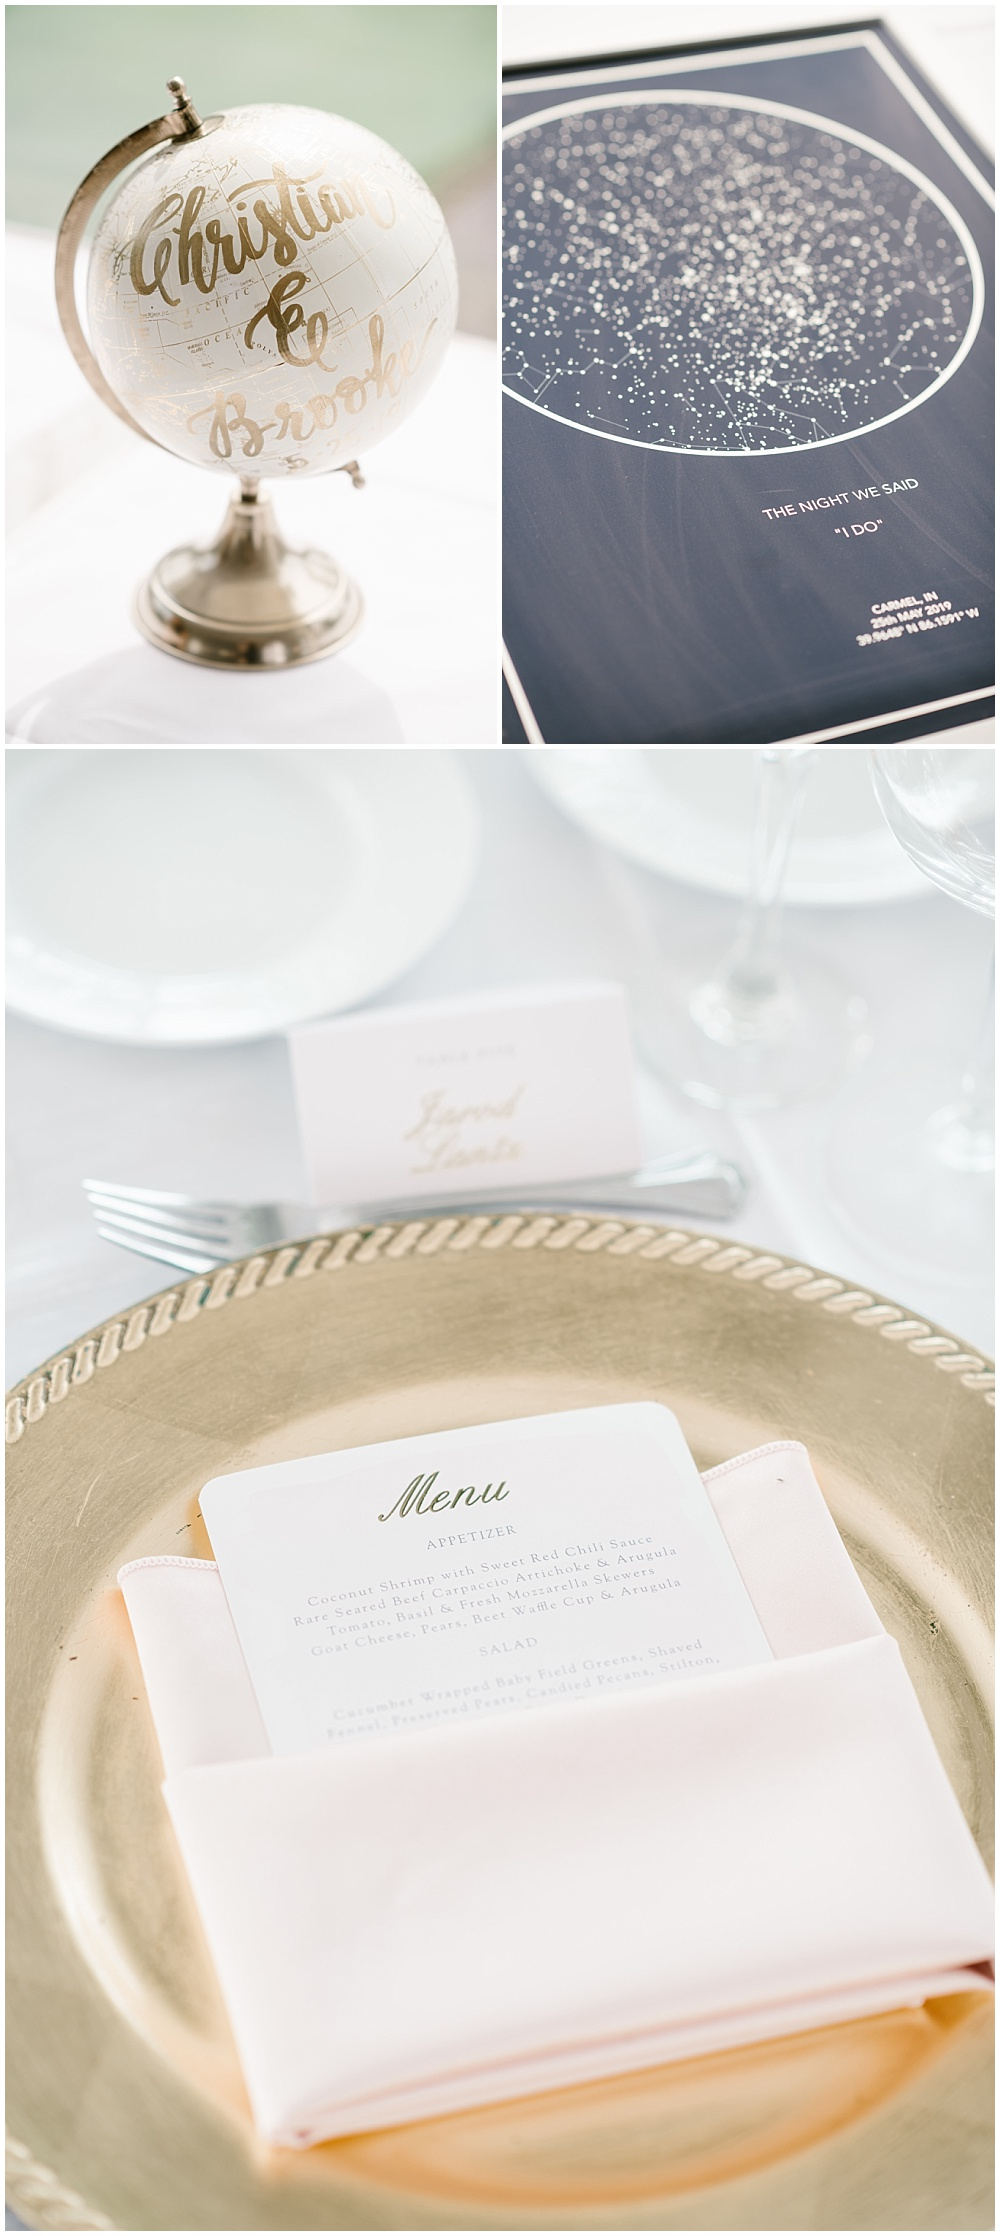 Constellation guestbook map for guests to sign and blush and gold wedding tablescape details. | Spring blush garden-inspired memorial day weekend wedding at the beautiful Ritz Charles Garden Pavilion with Stacy Able Photography and Jessica Dum Wedding Coordination